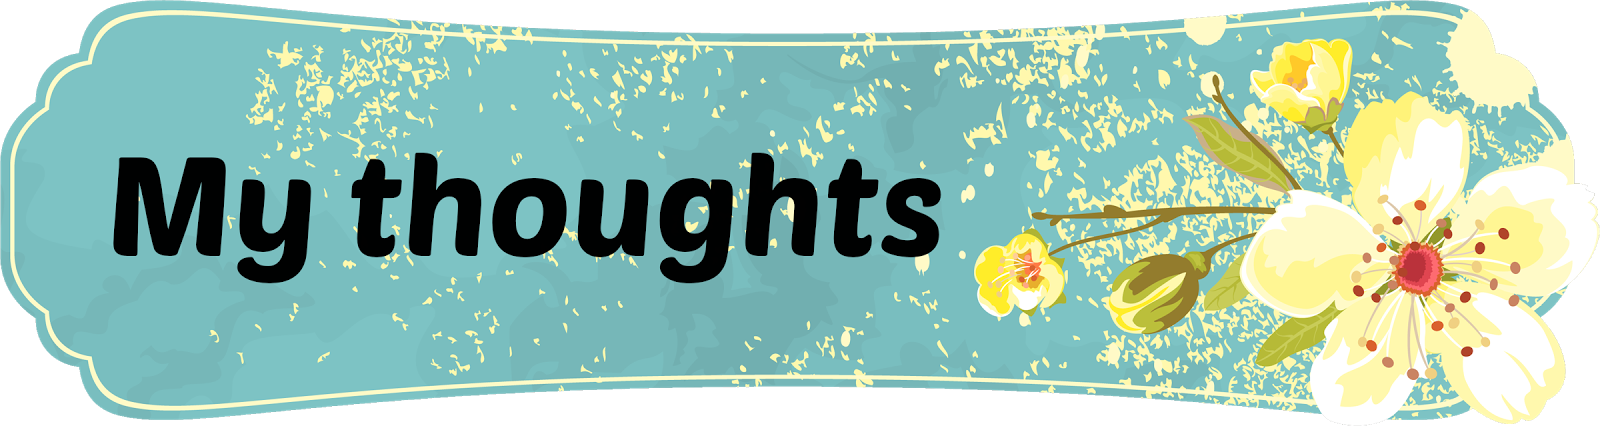 Banner: My thooughts